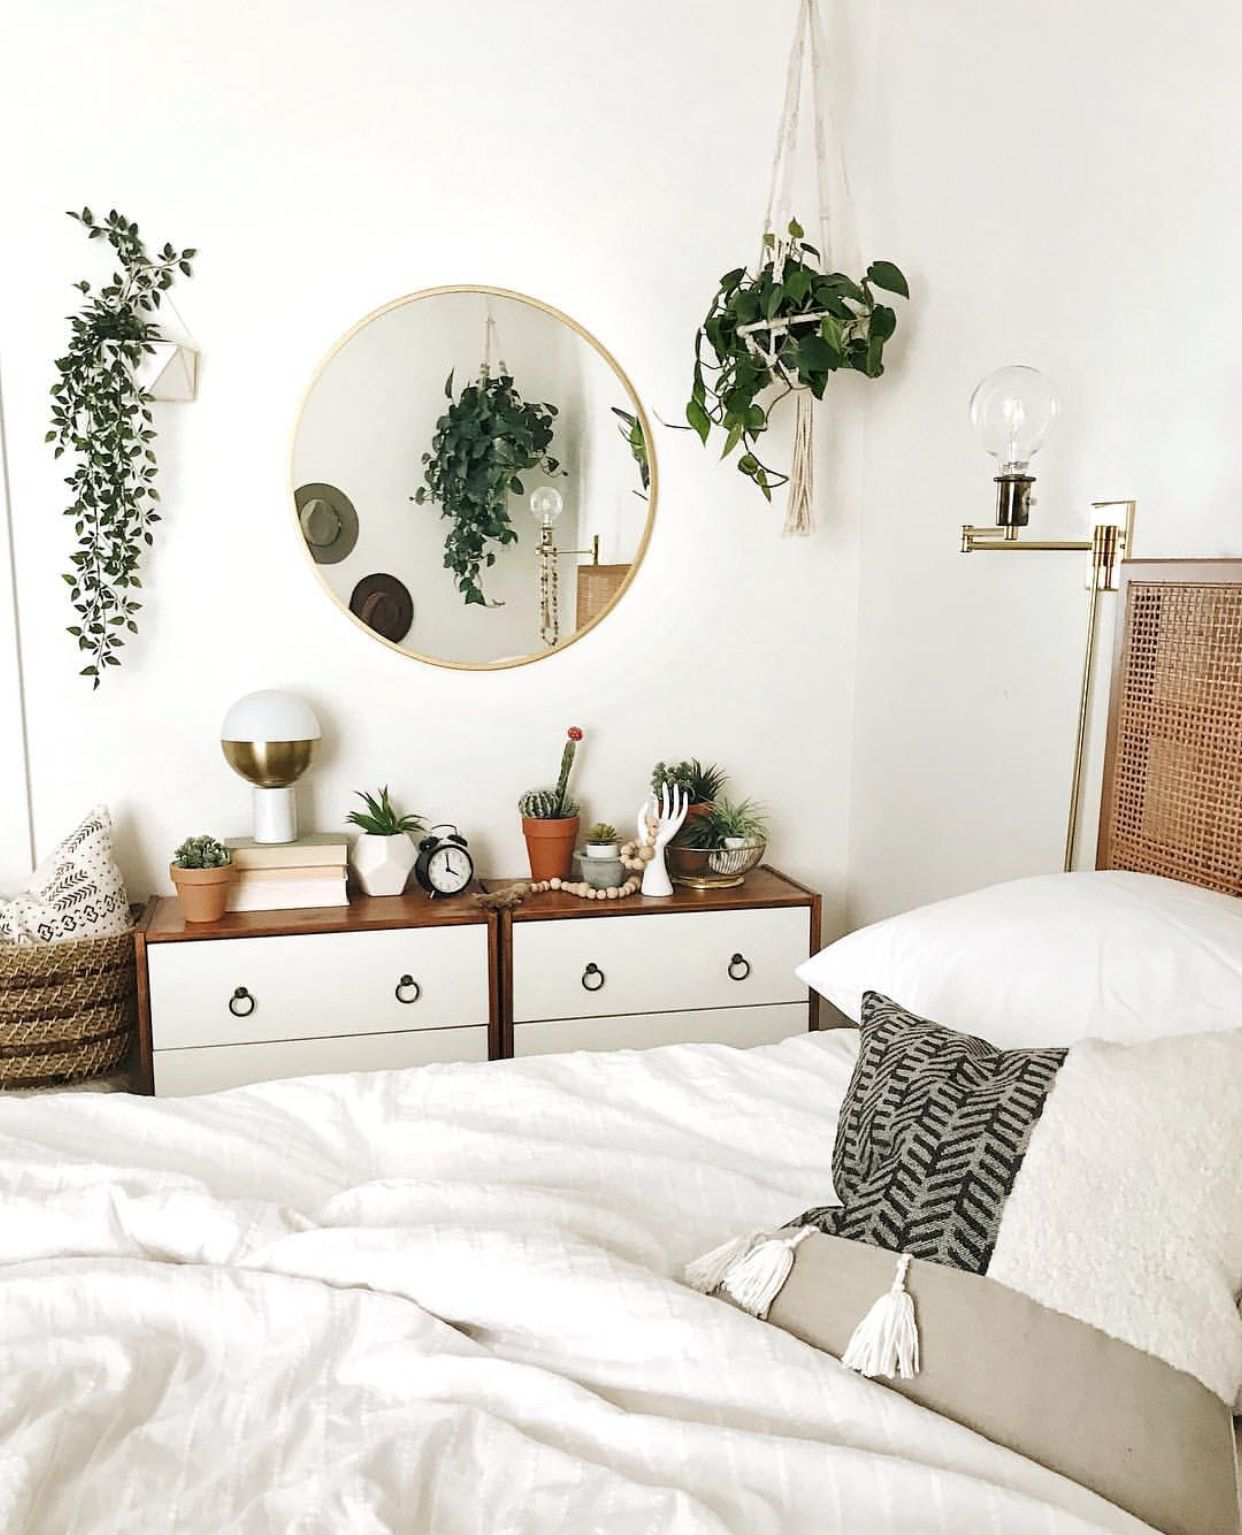 Pin by Emily Schultz on Cིྀuིྀtིྀeིྀ ... on Room Decor Paredes Aesthetic id=50205